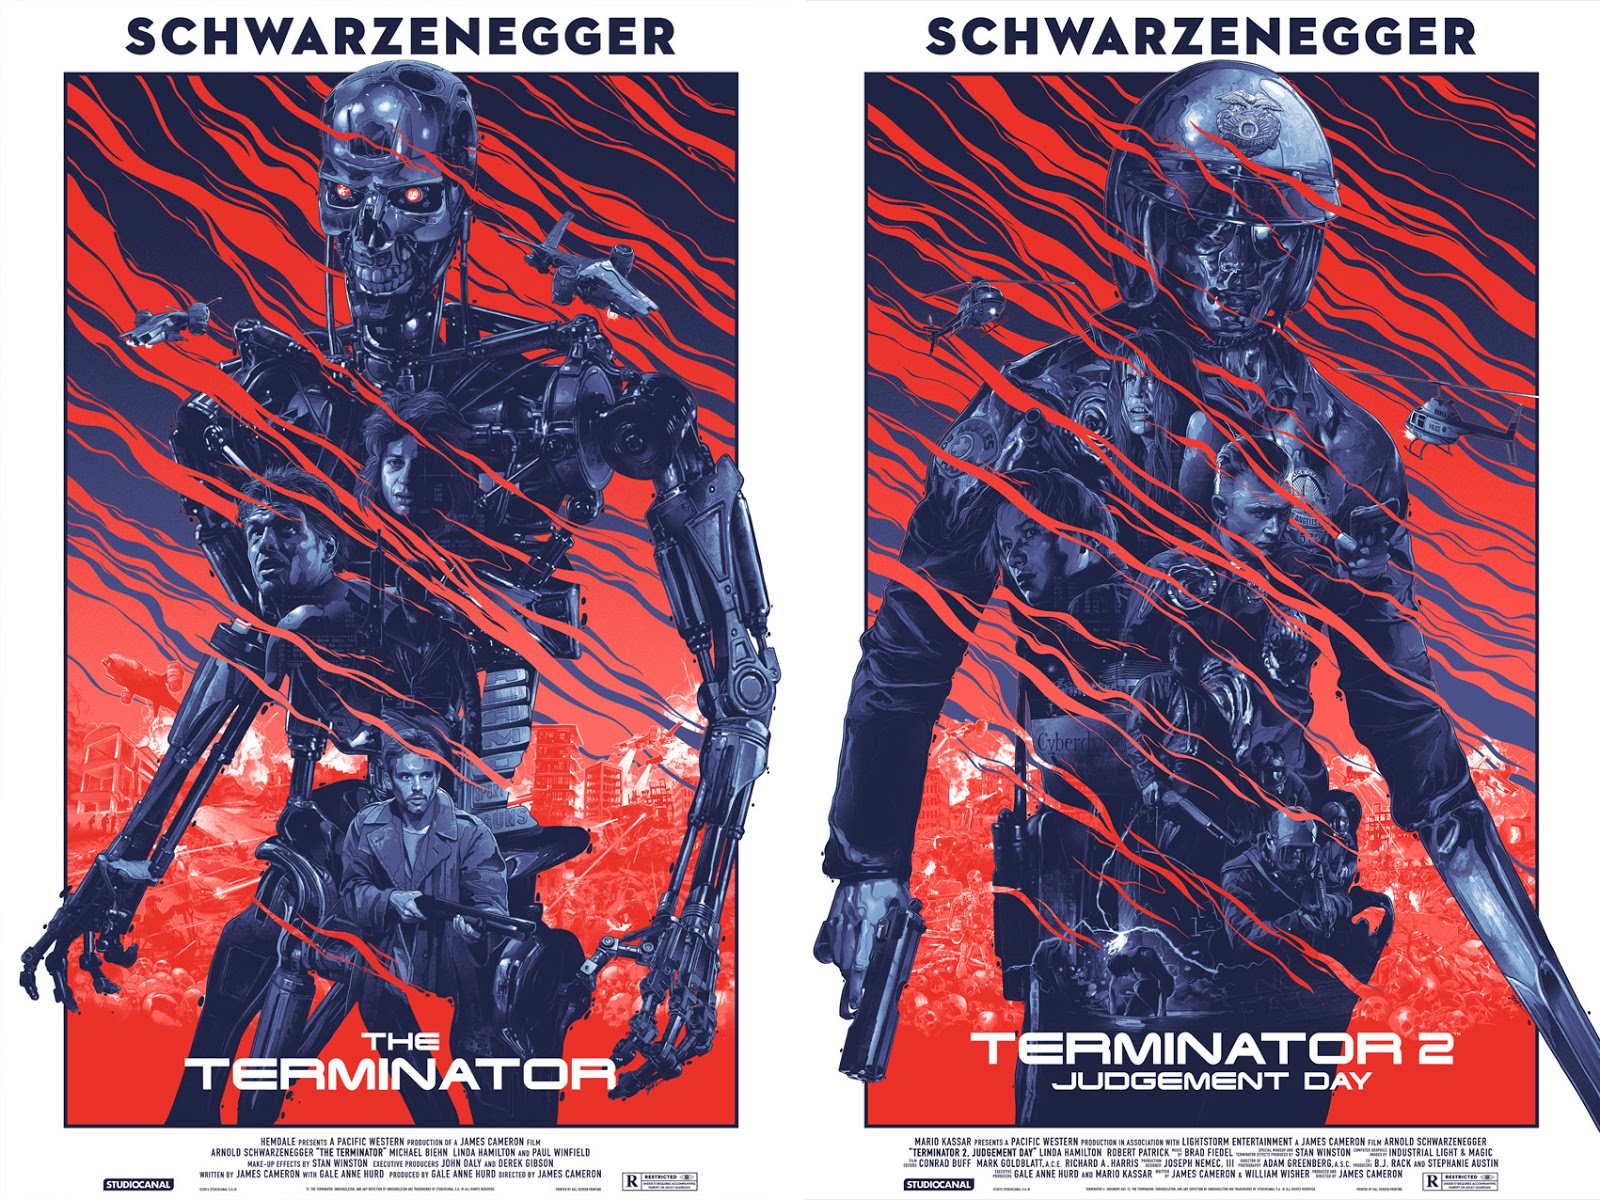 Terminator Dyptich Screen Print Series by Grzegorz Domaradzki - Terminator & Terminator 2: Judgment Day